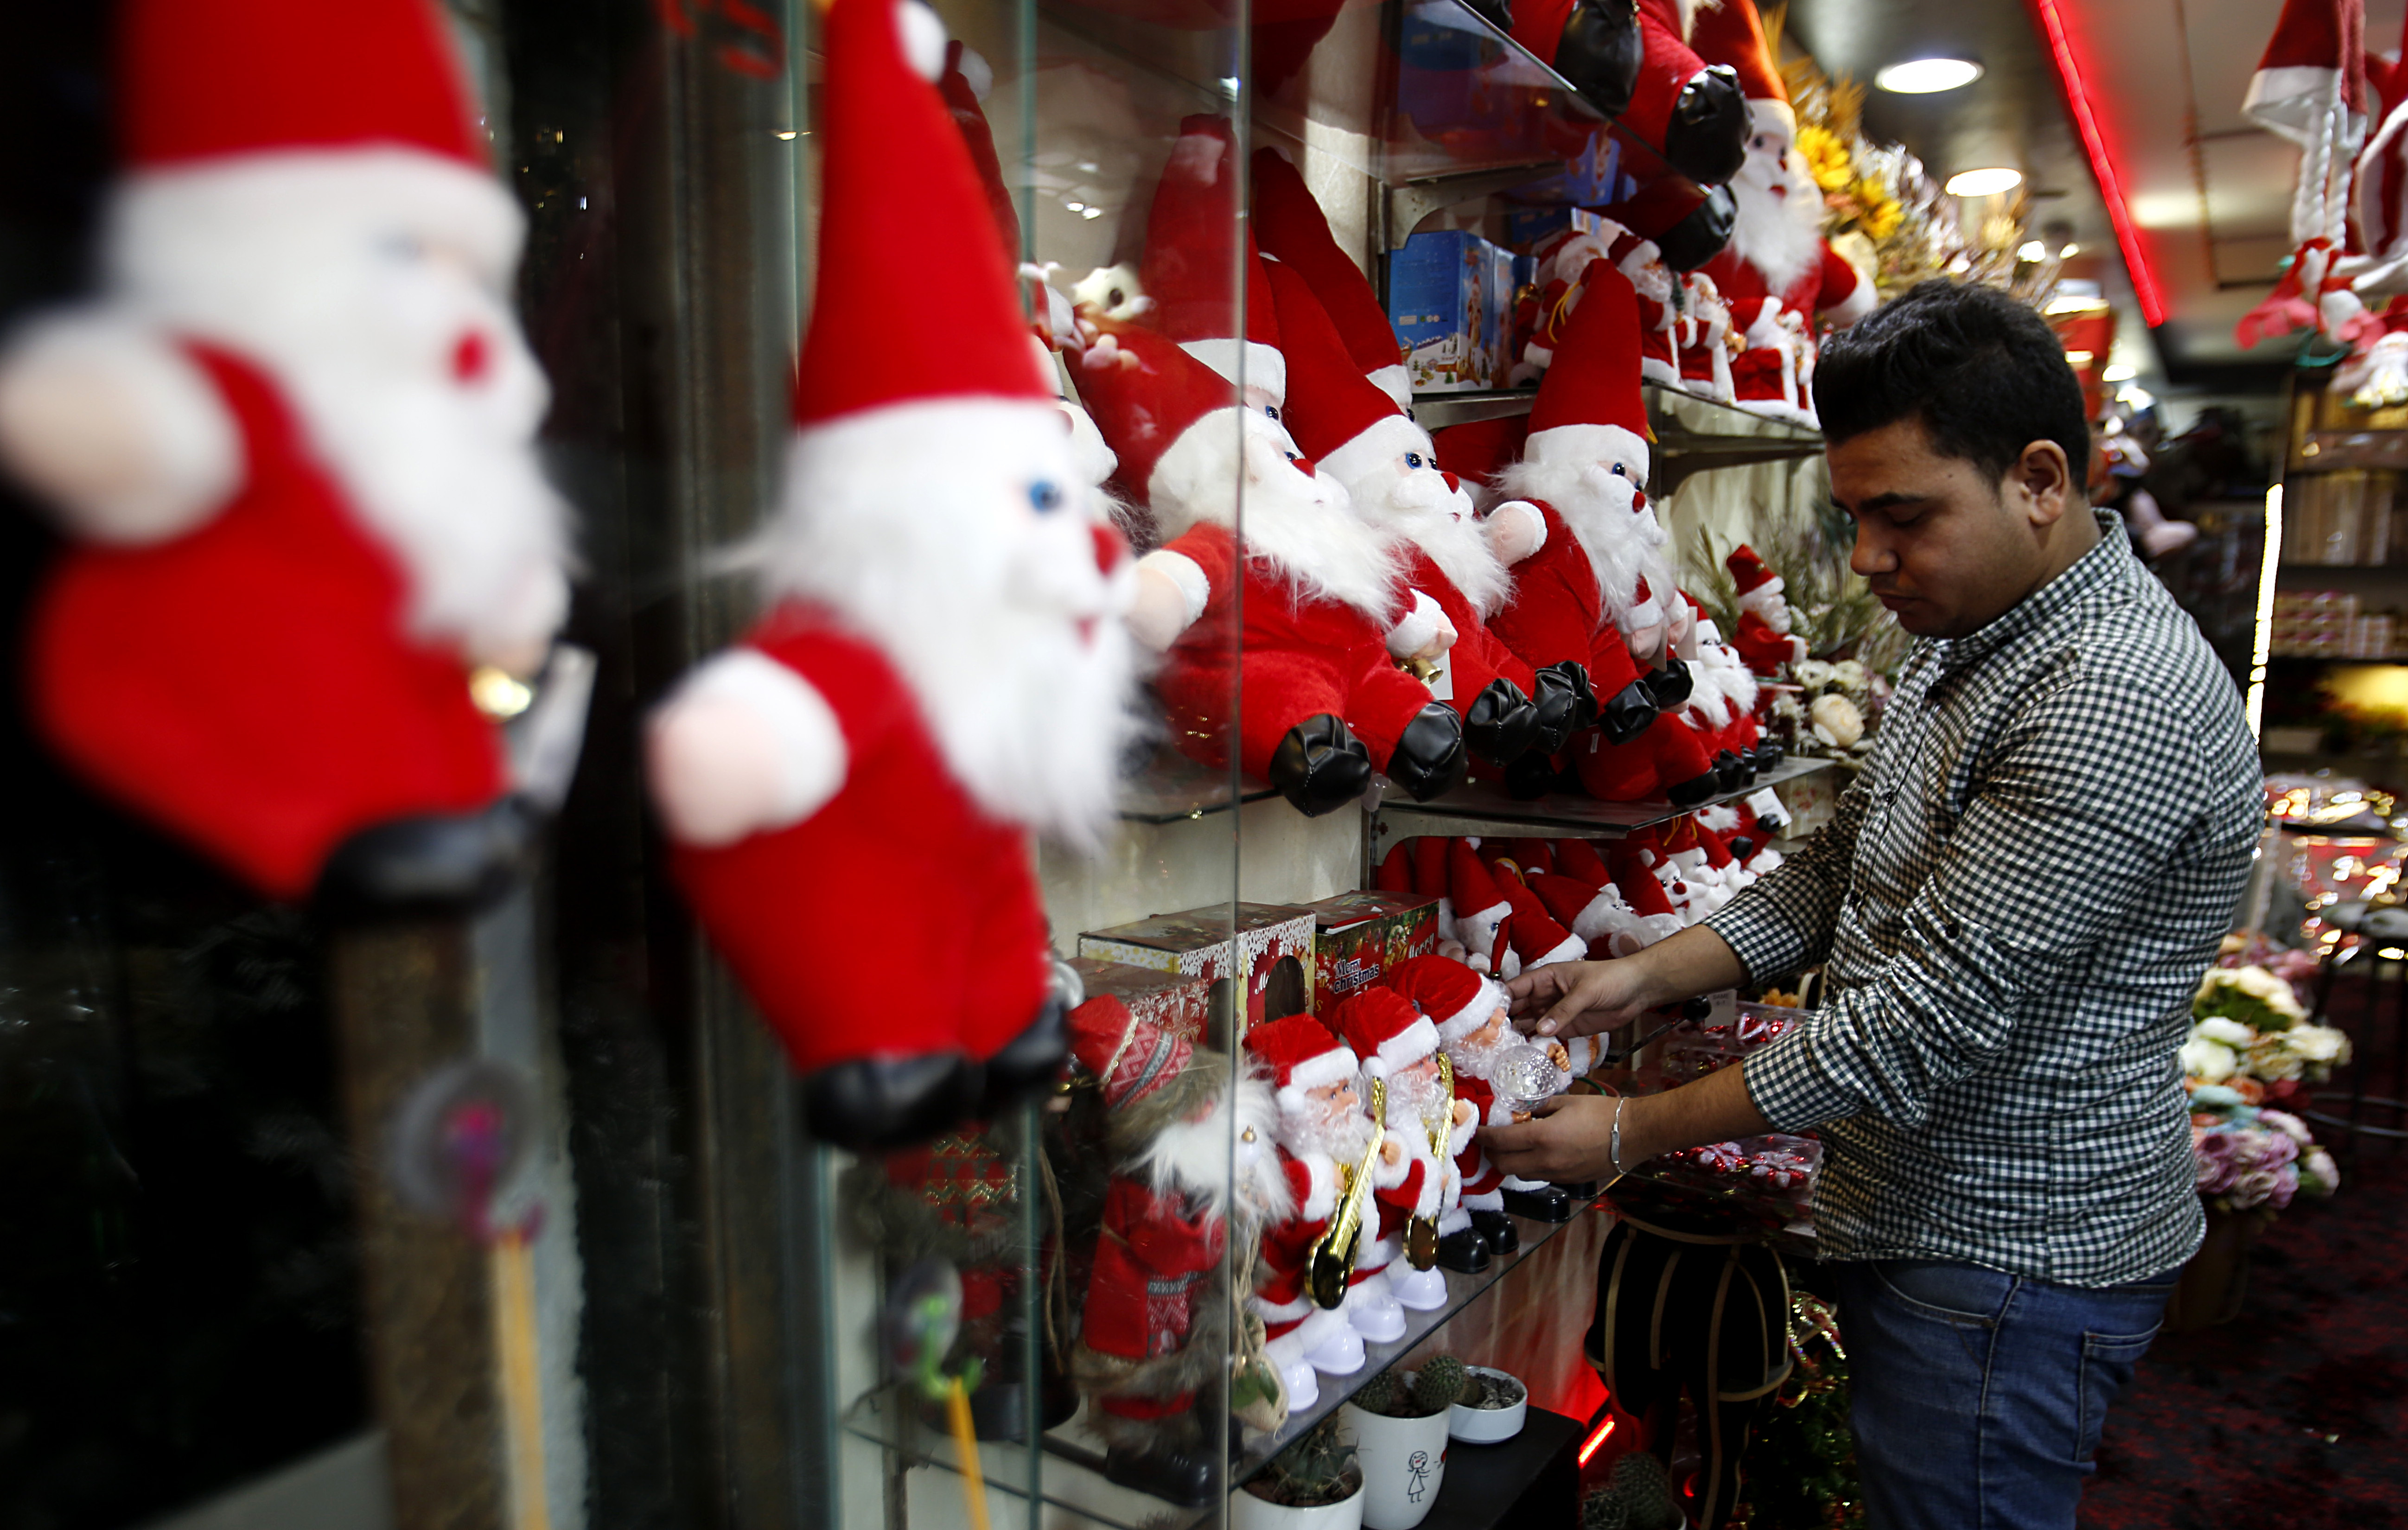 Israel to grant holiday travel permits to Gaza Christians